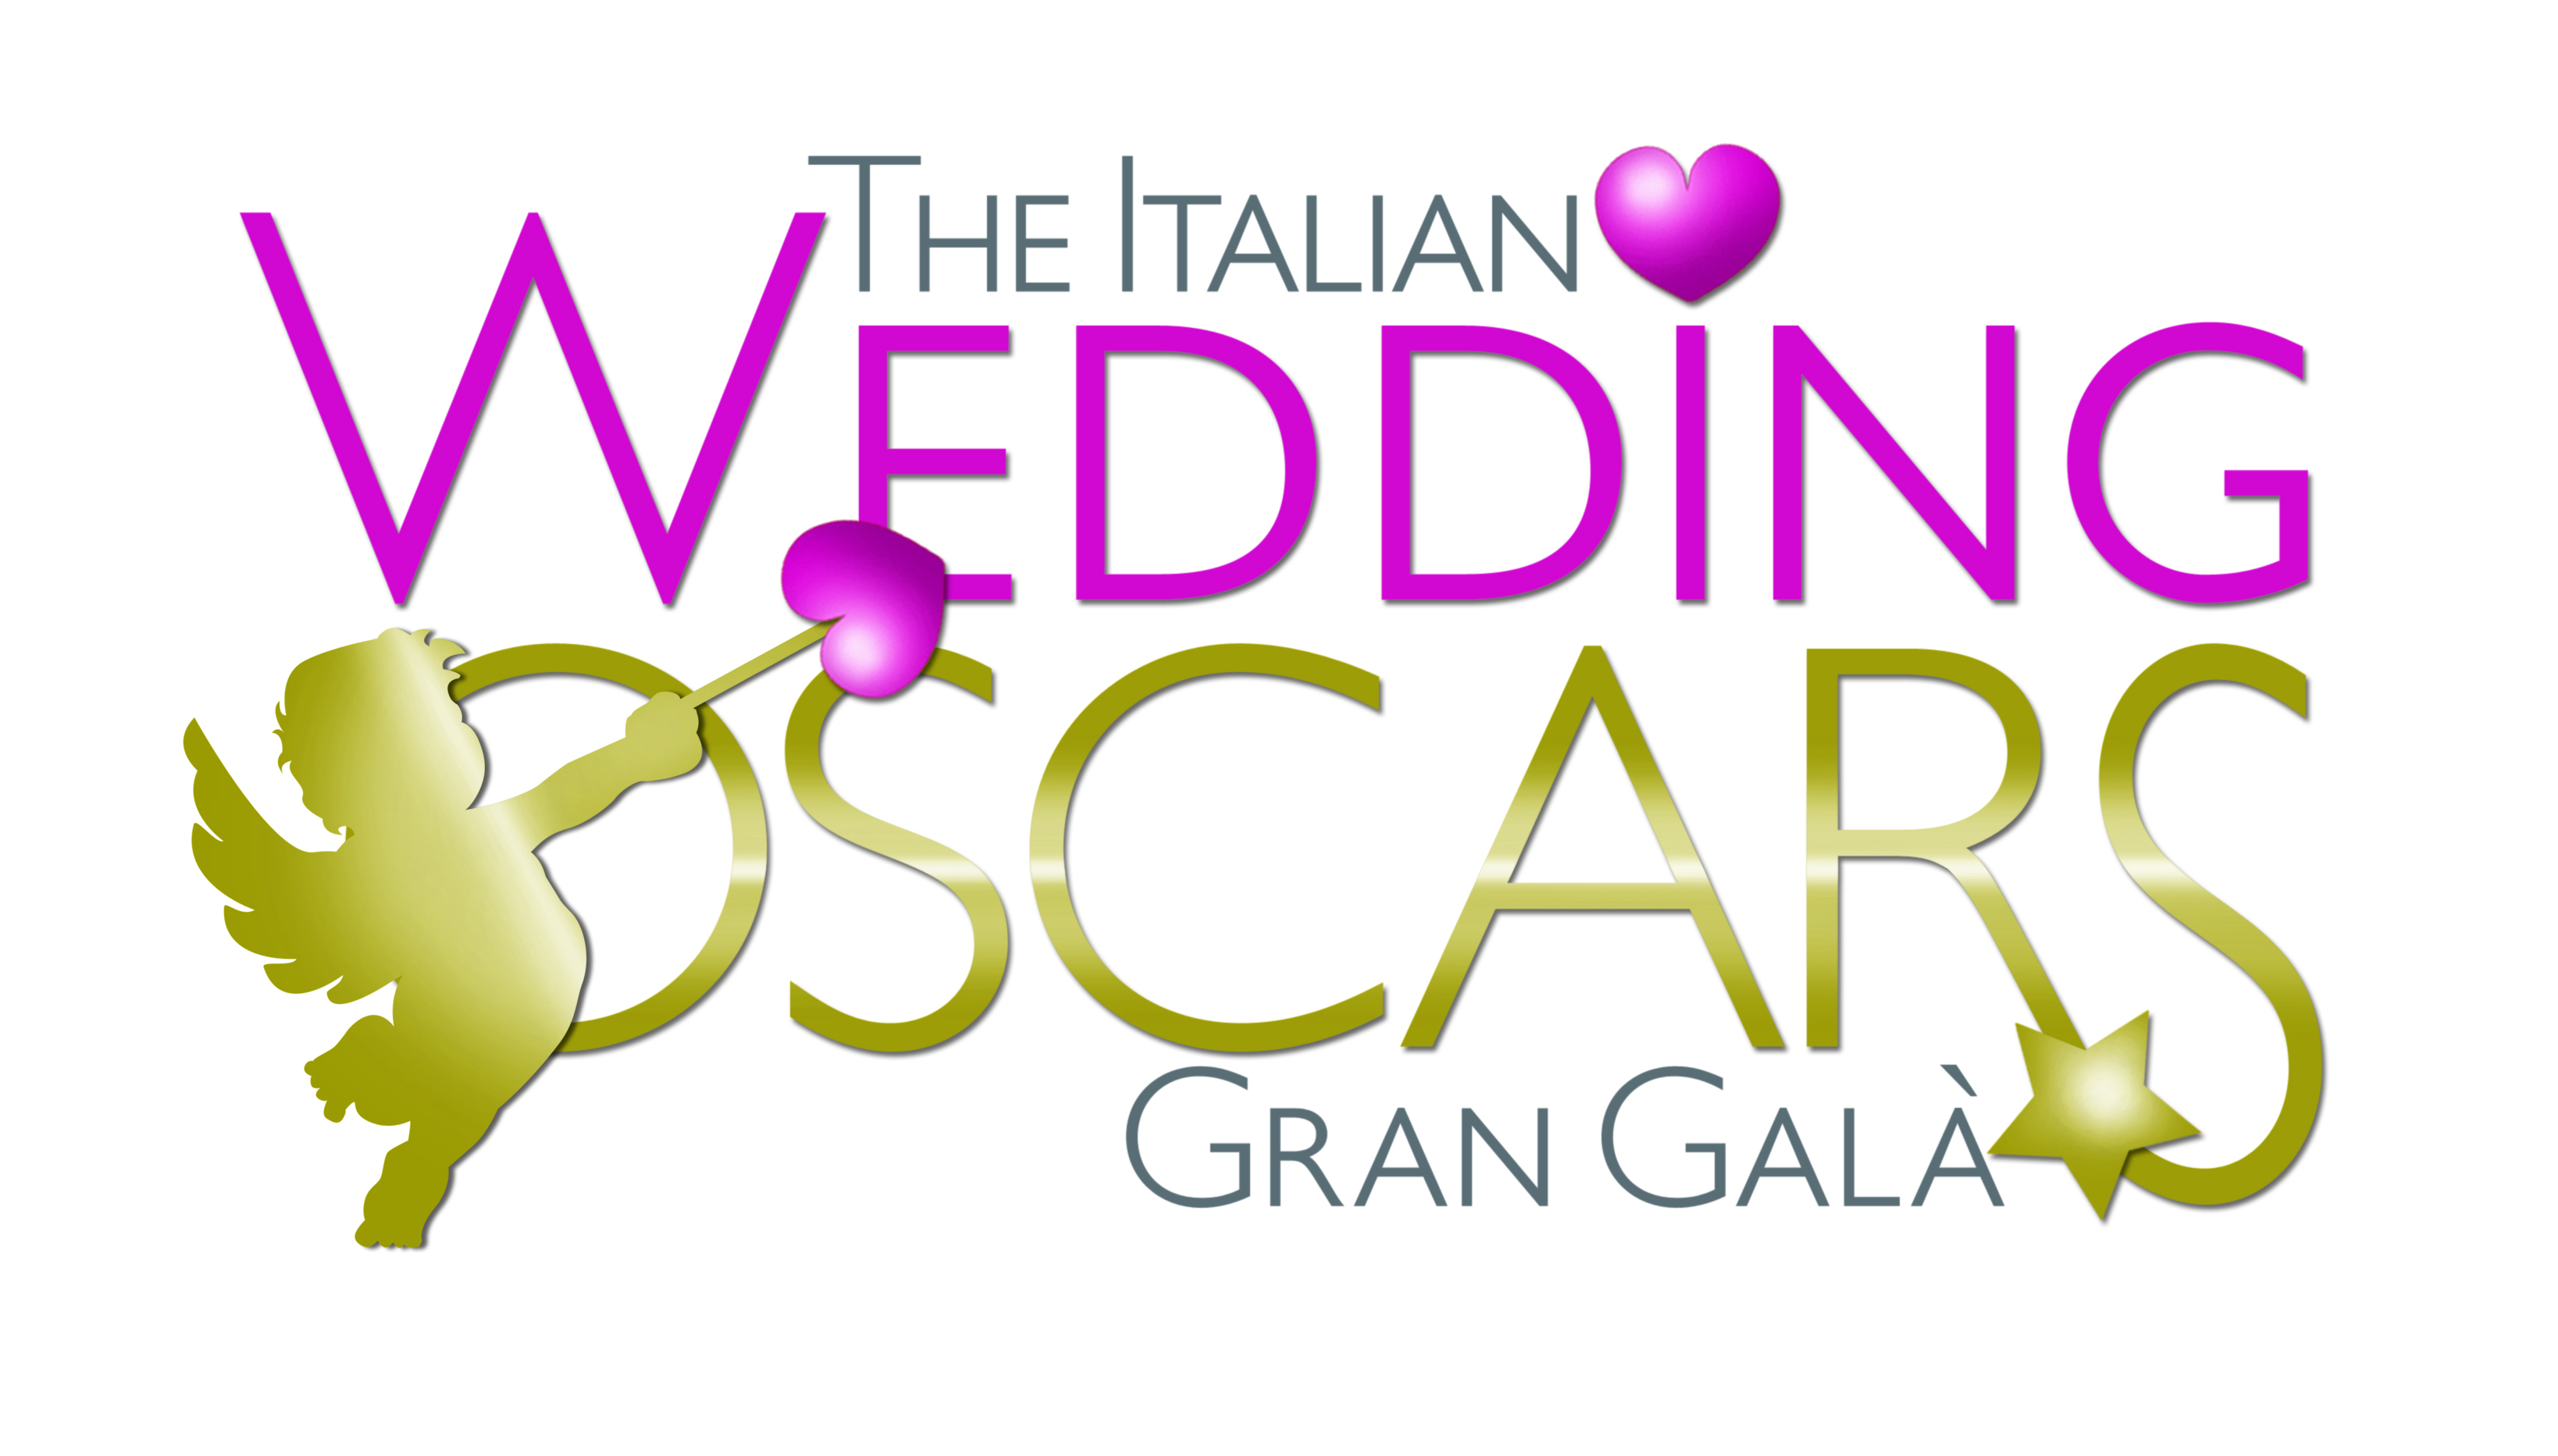 The Italian Wedding Oscars Gran Galà